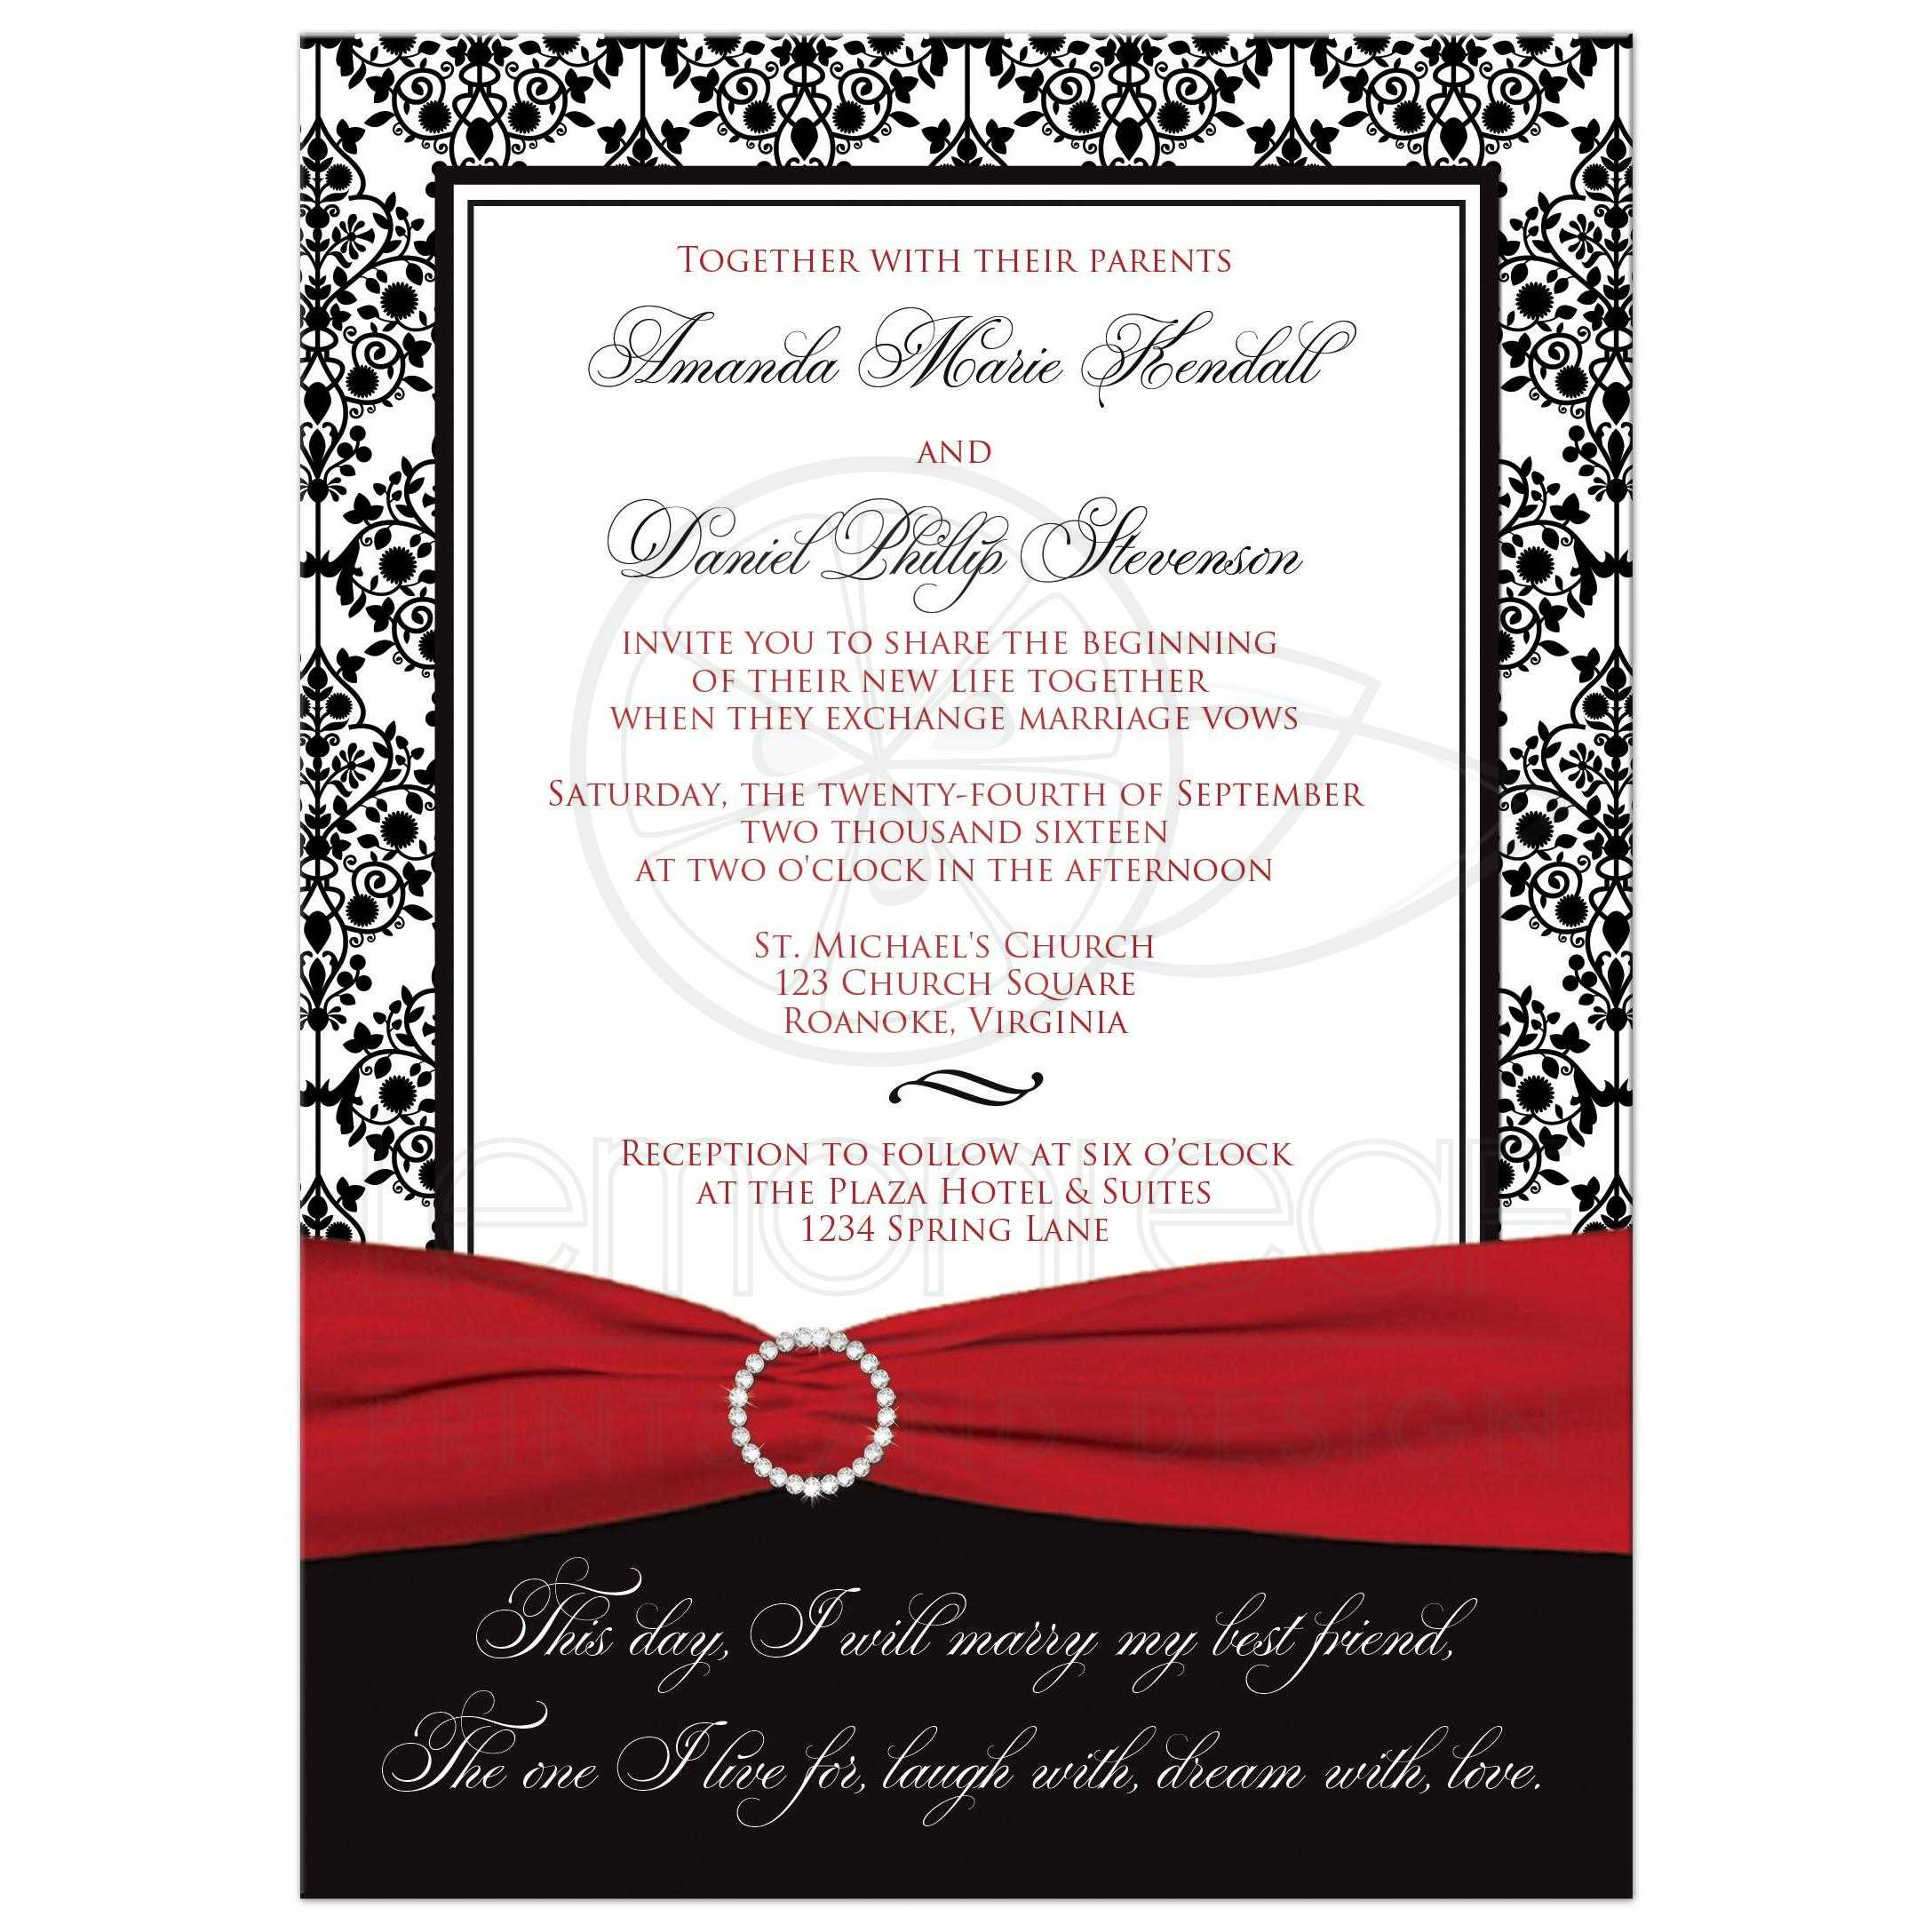 wedding invitations black white and red - Romeo.landinez.co